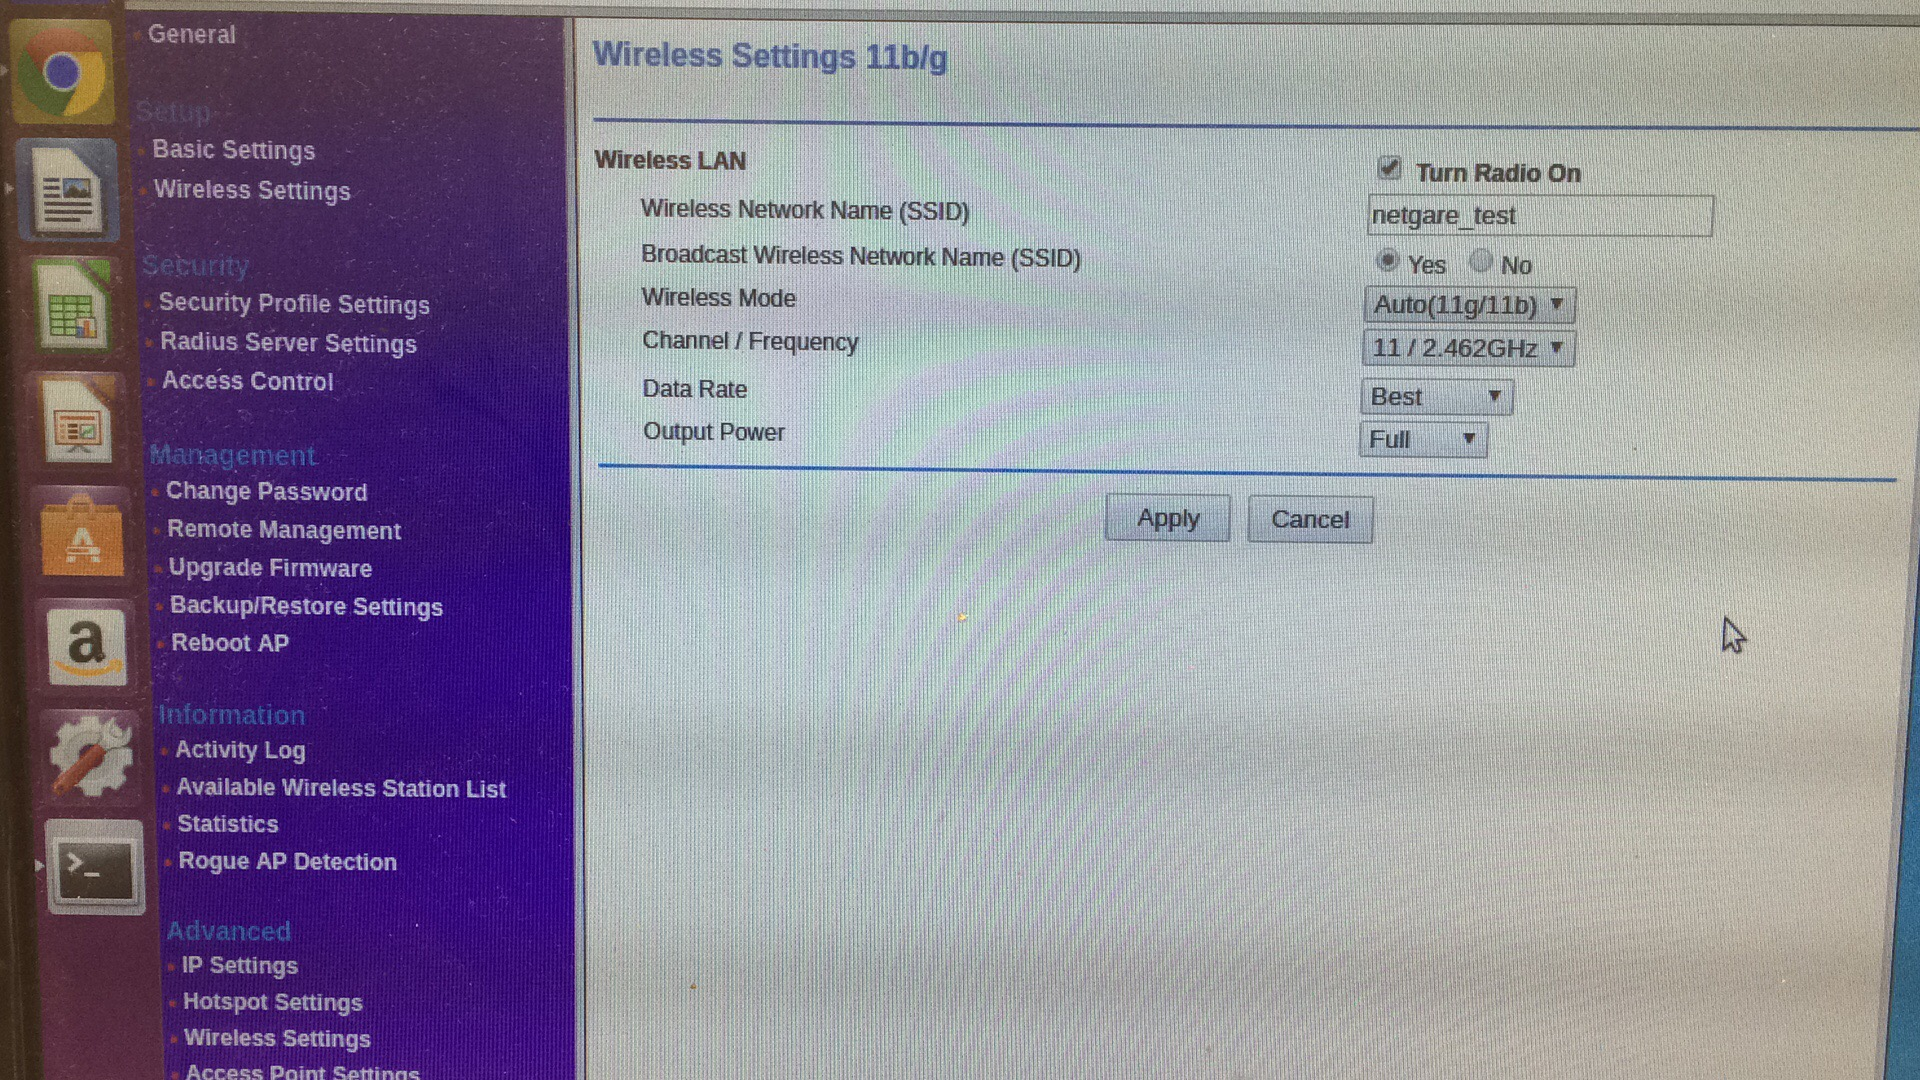 TW#24599] WPA2-Enterprise not possible with an old Netgear